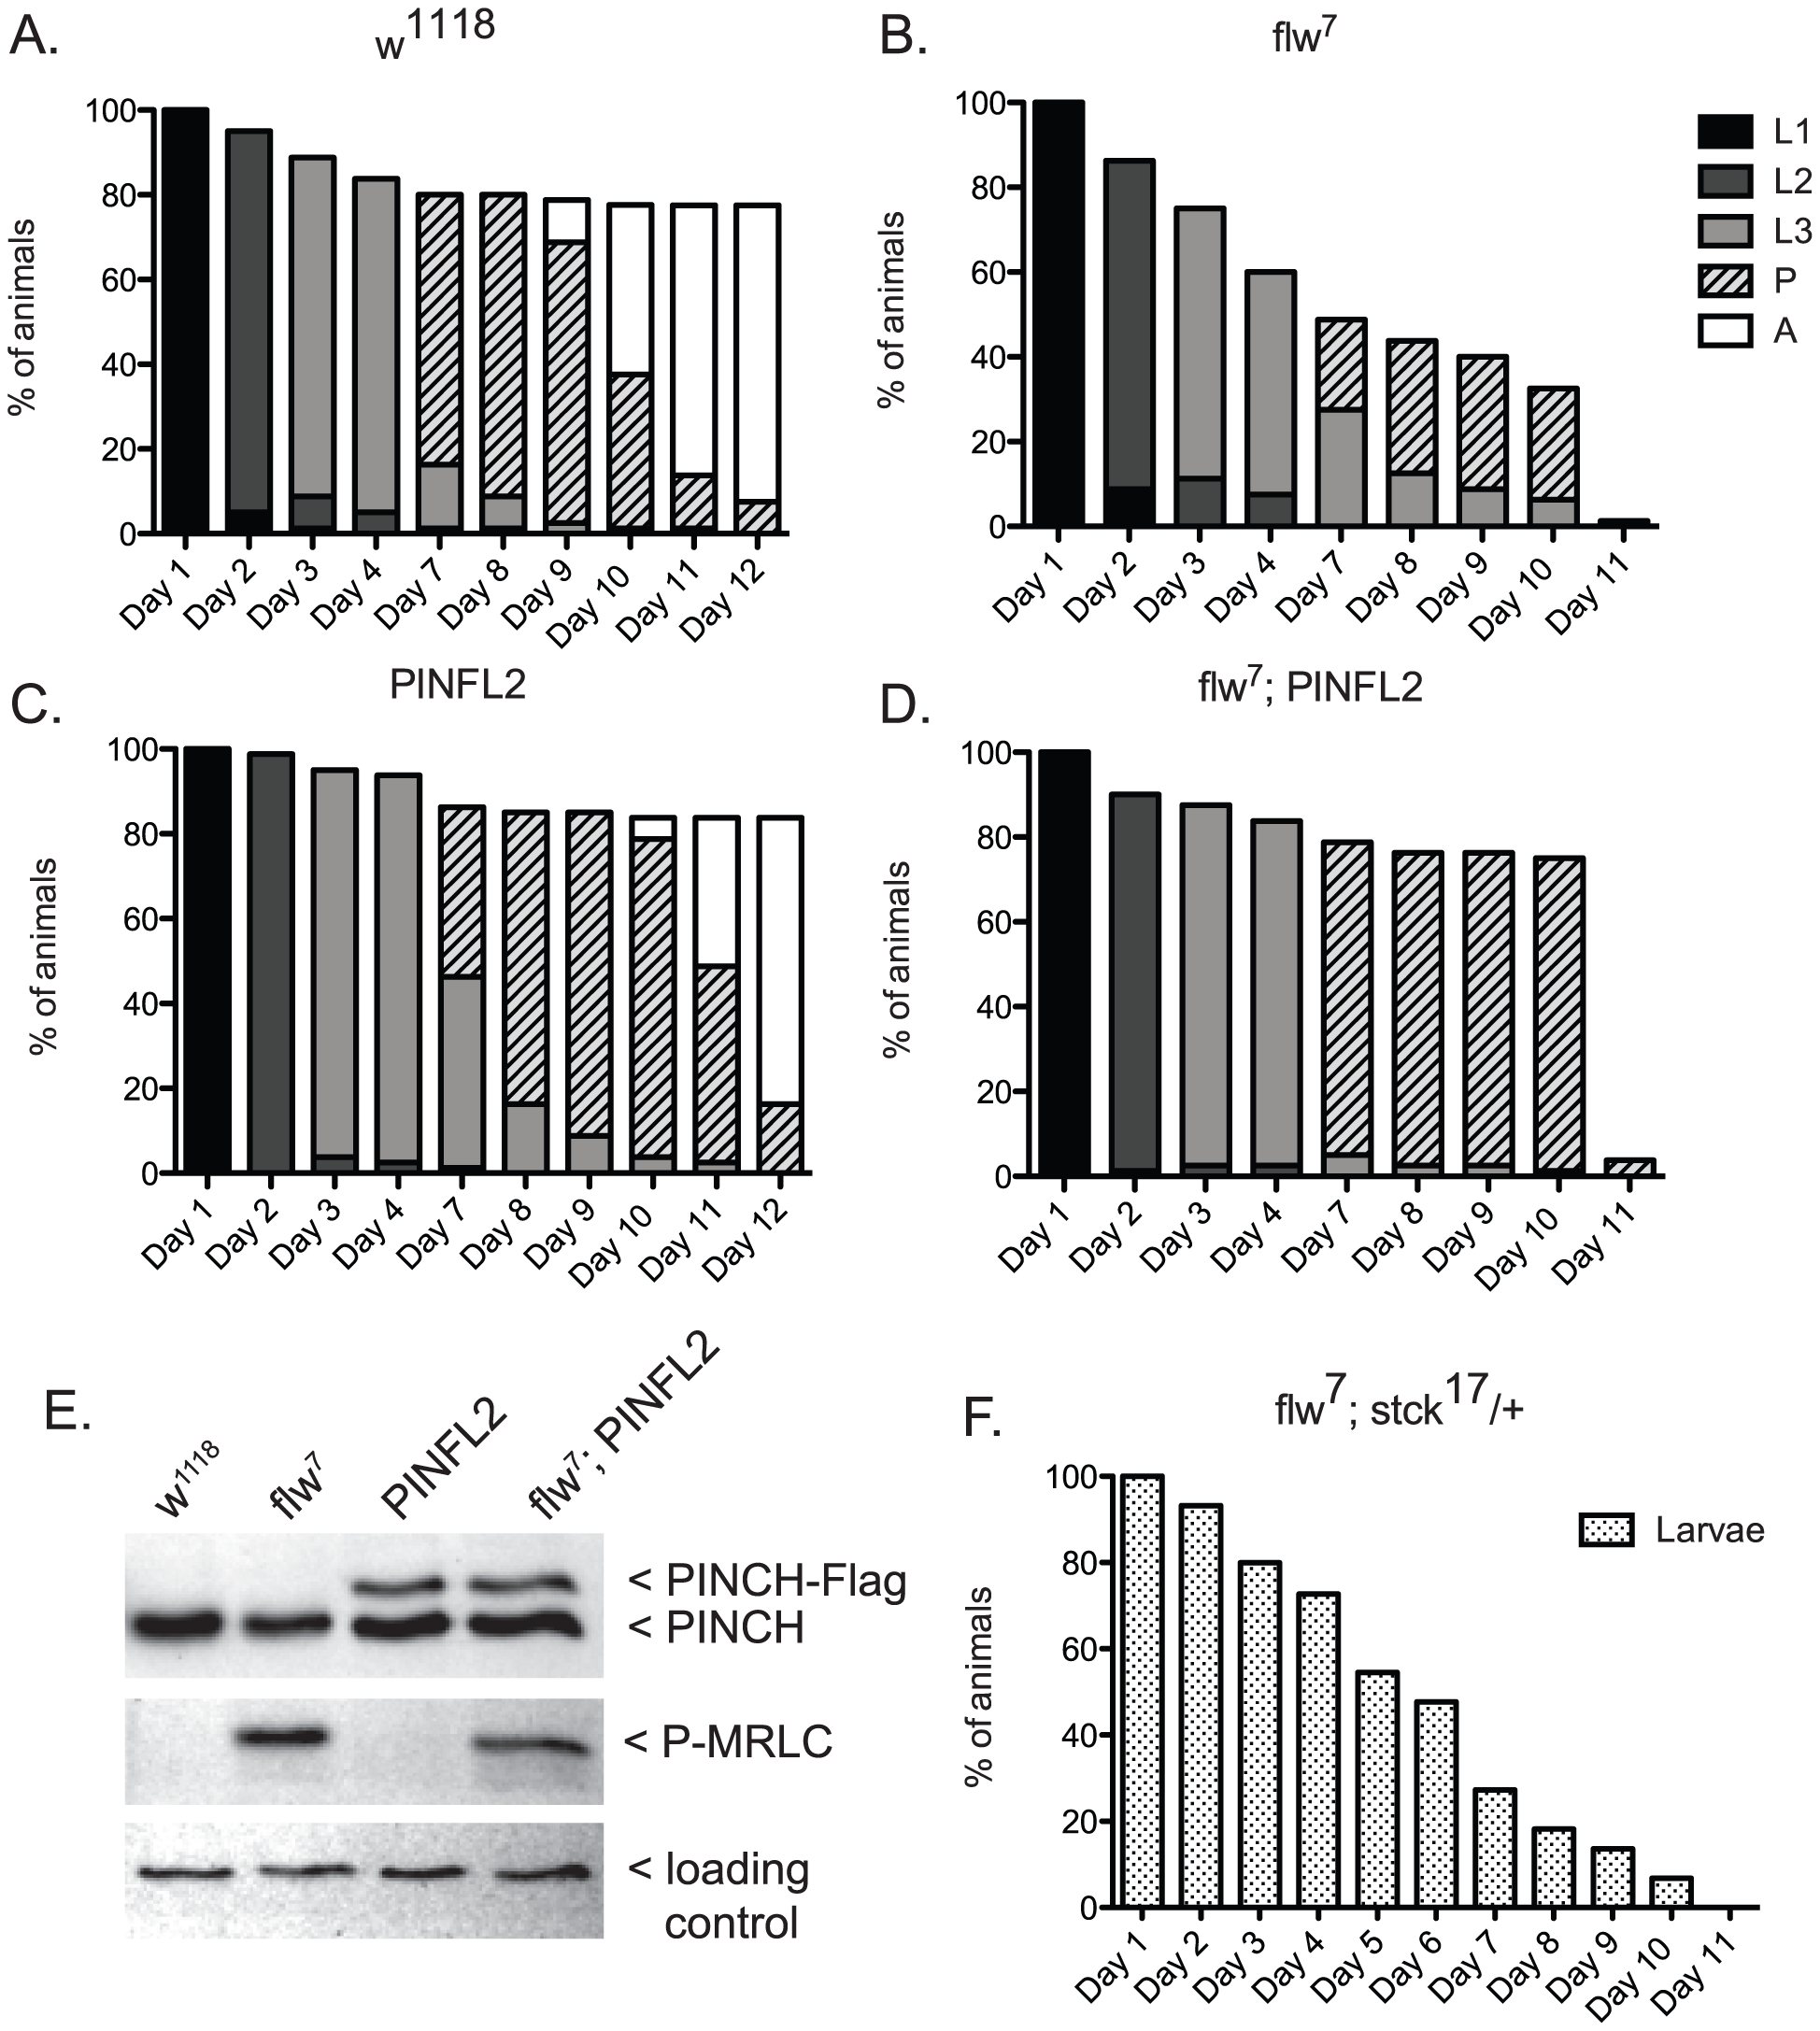 Expression of PINCH-Flag fully rescues the larval lethality of the <i>flw<sup>7</sup></i> mutant independently of MRLC/Sqh dephosphorylation.